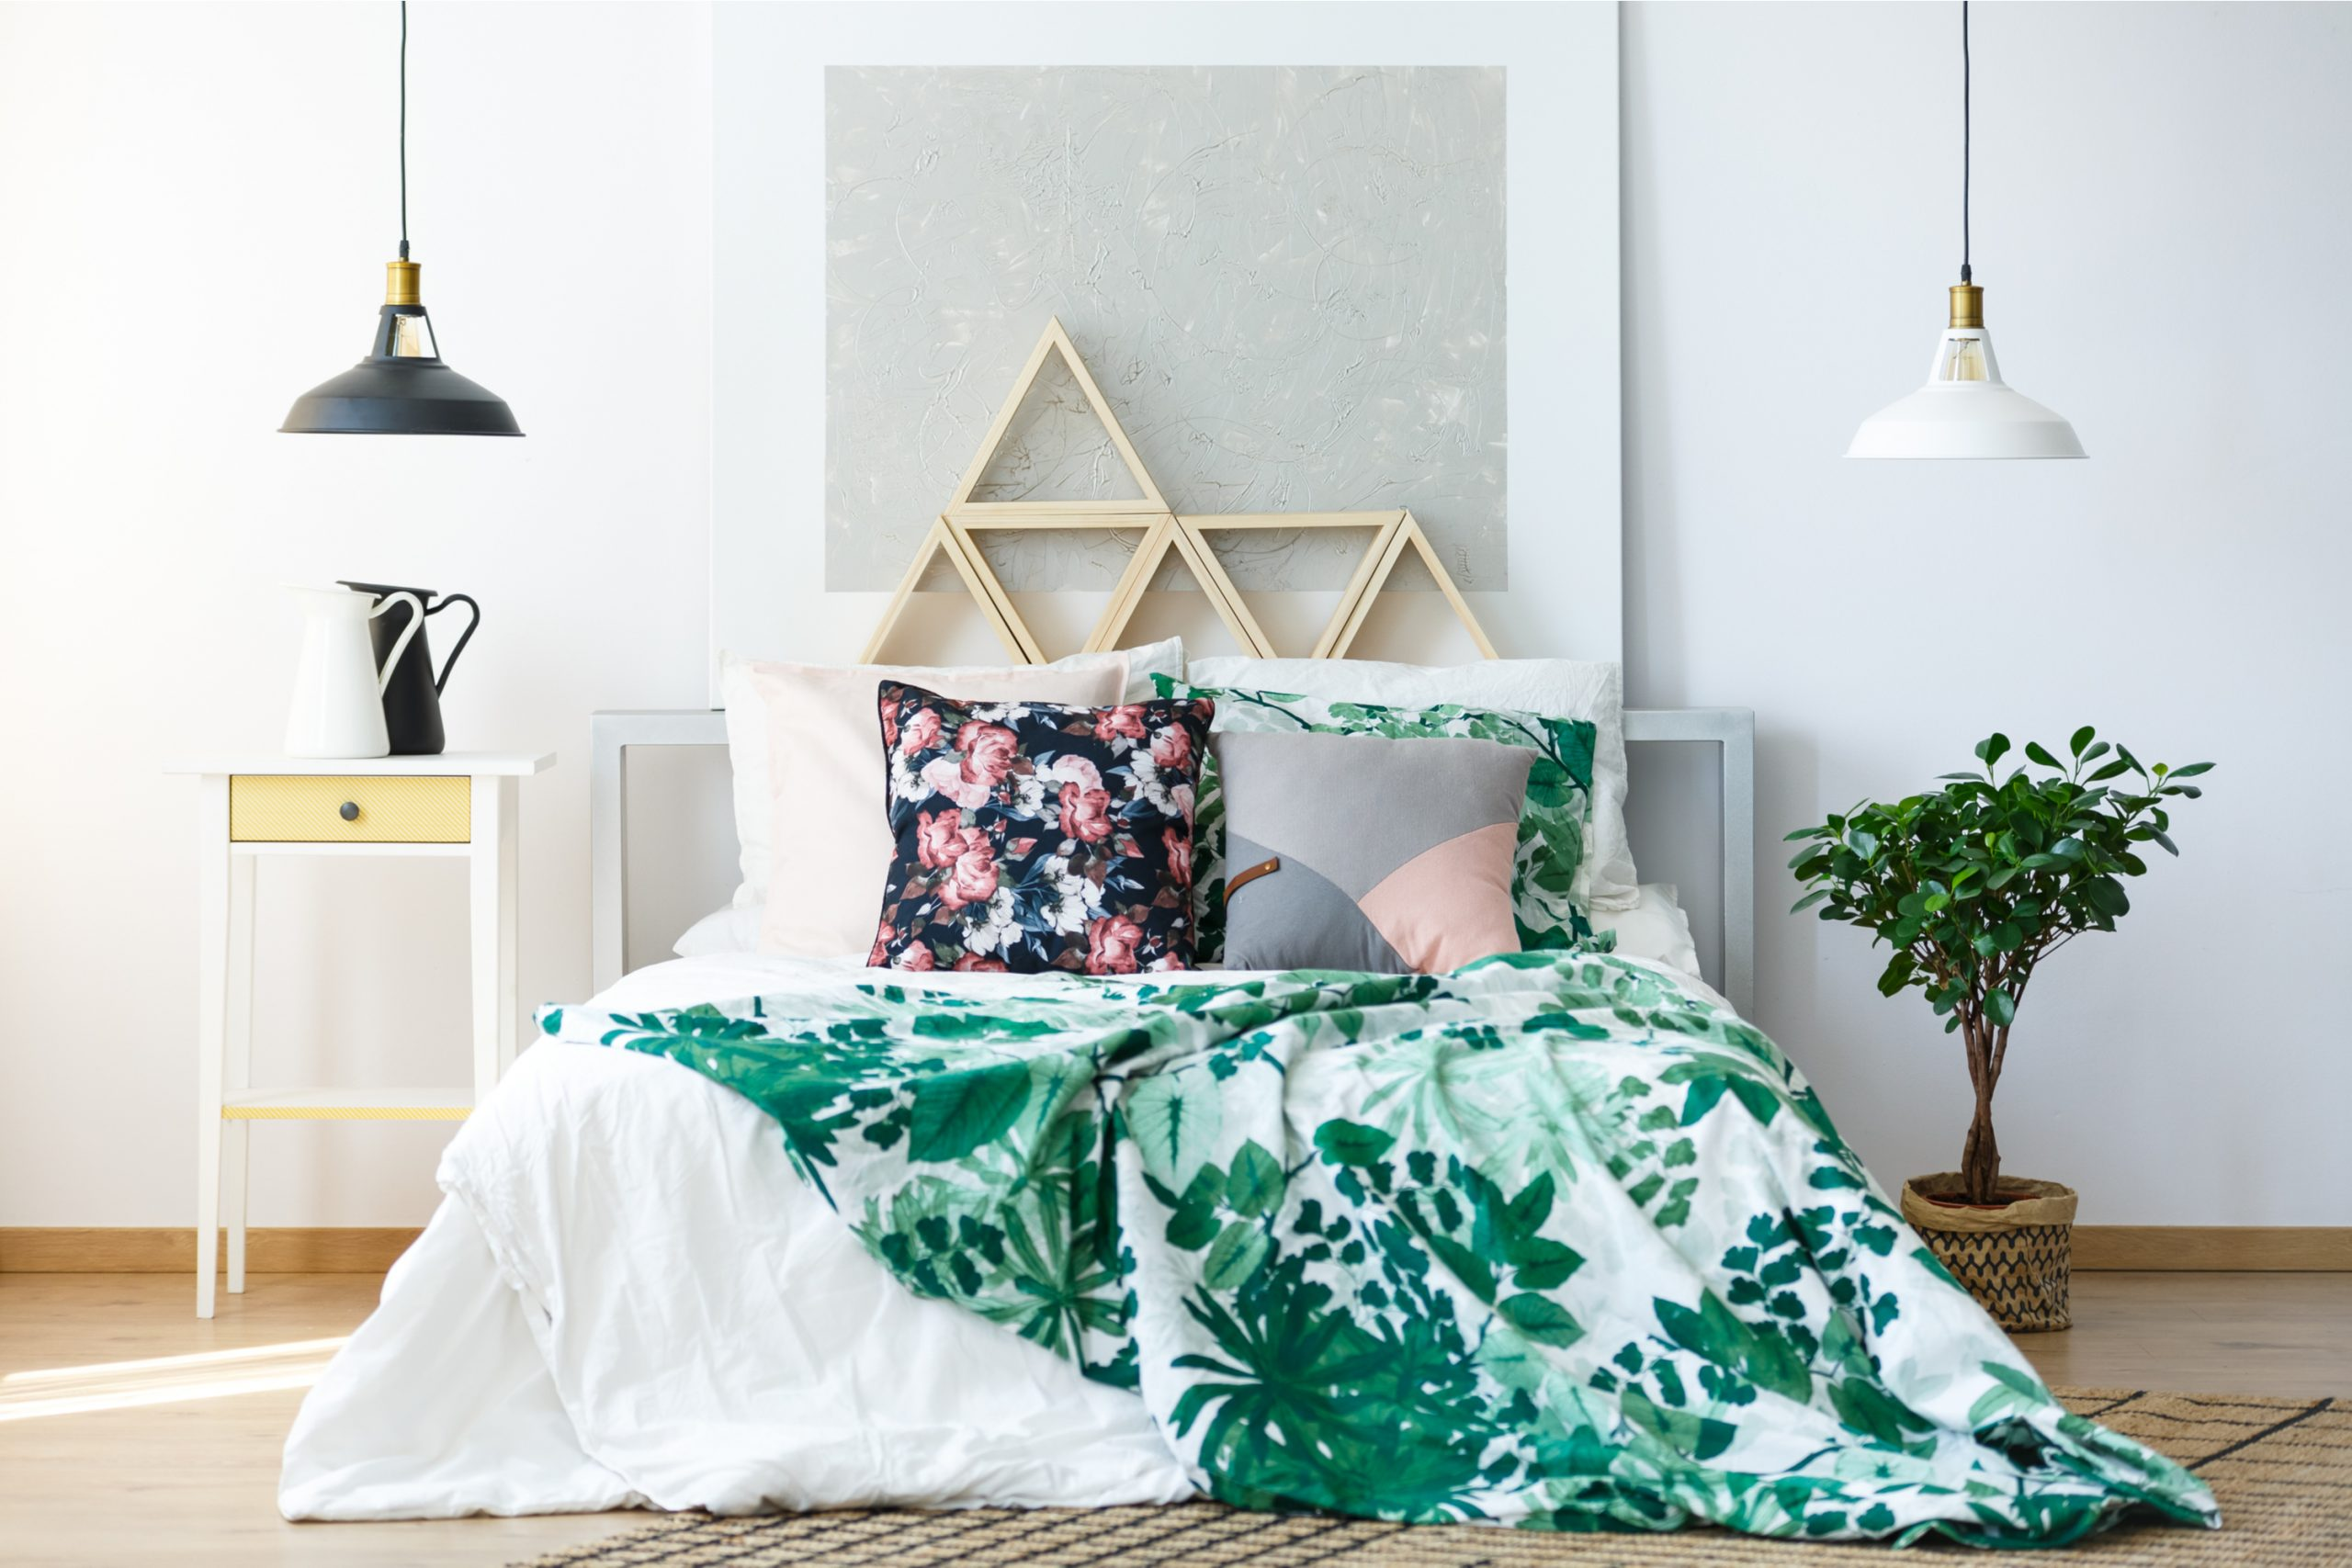 Calling all DIY lovers!!! These DIY headboard ideas will certainly get you excited about changing up your room. You will love this DIY headboard with storage.